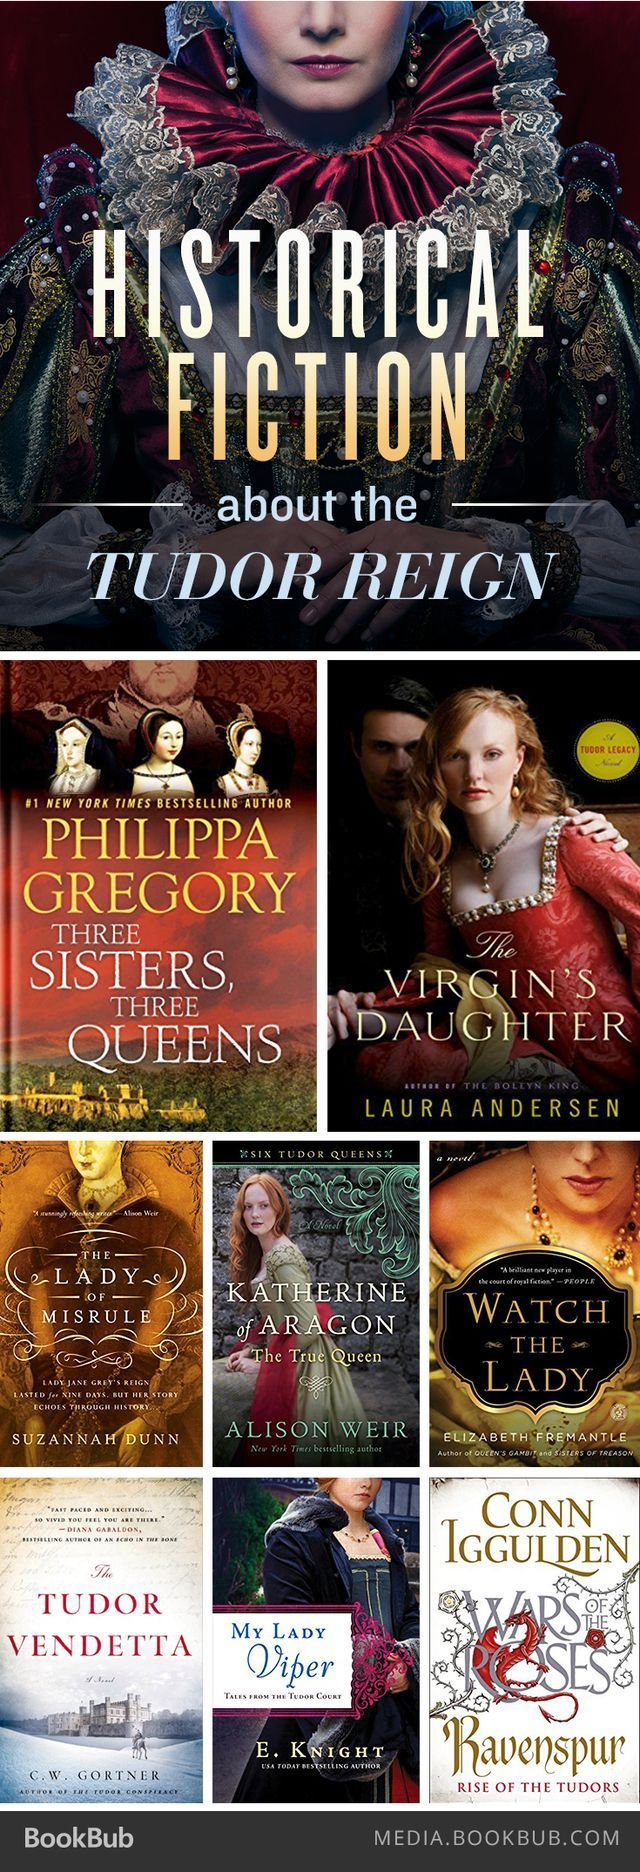 8 Historical Fiction Books About The Tudor Reign  8 Historical Fiction  Books About The Tudor